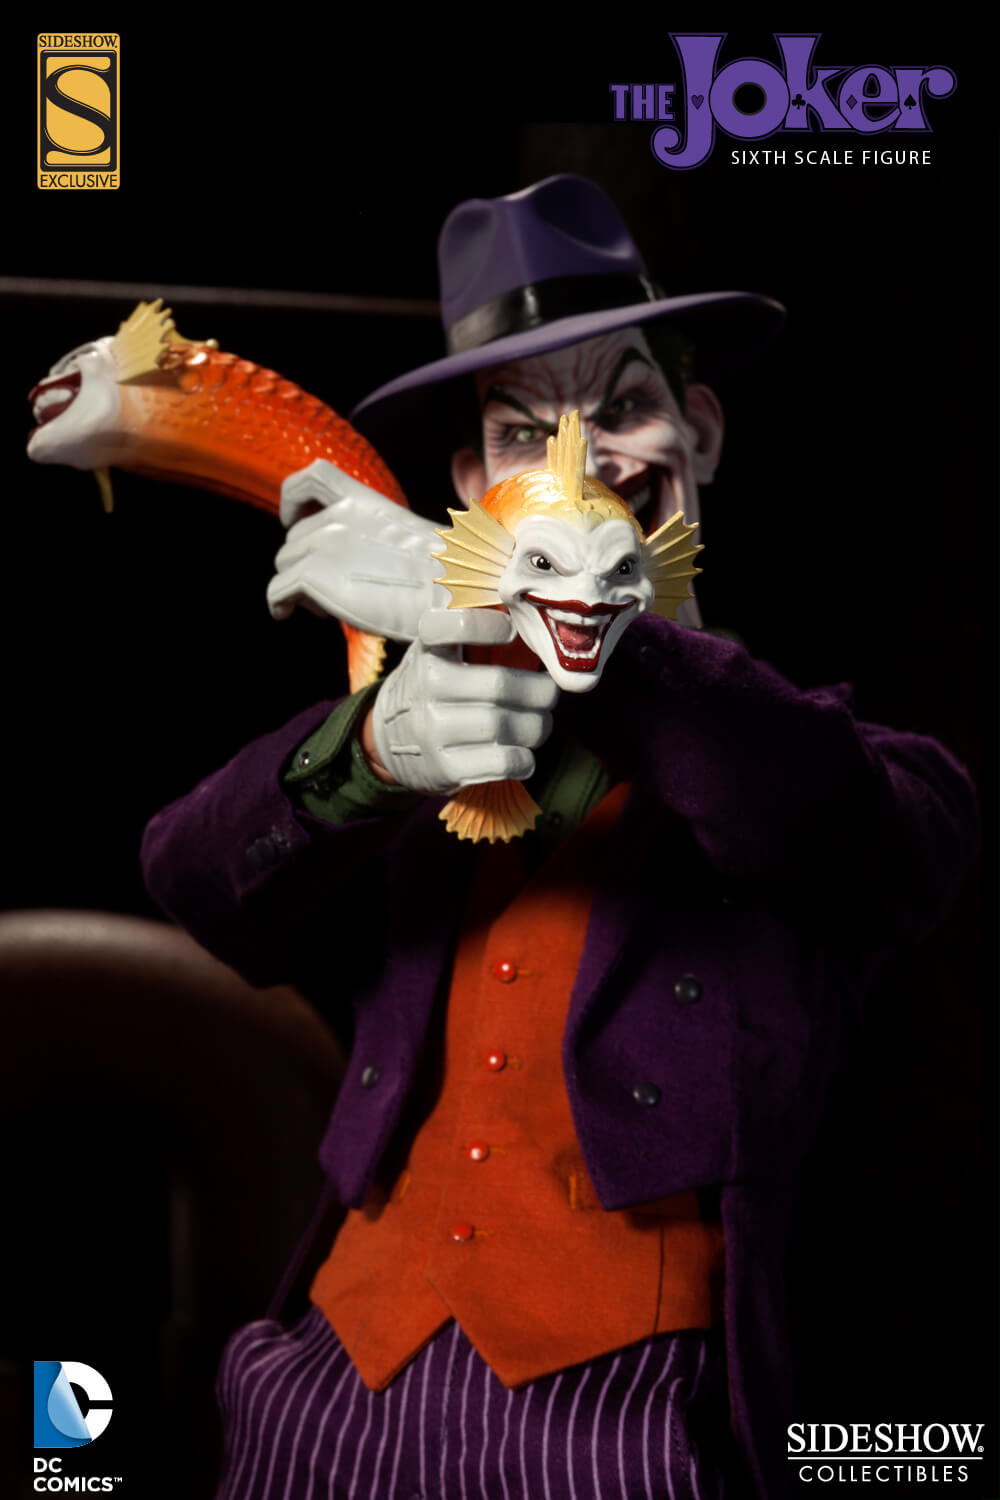 Sideshow Collectibles DC Joker Sixth Scale Figure exclusive accessory